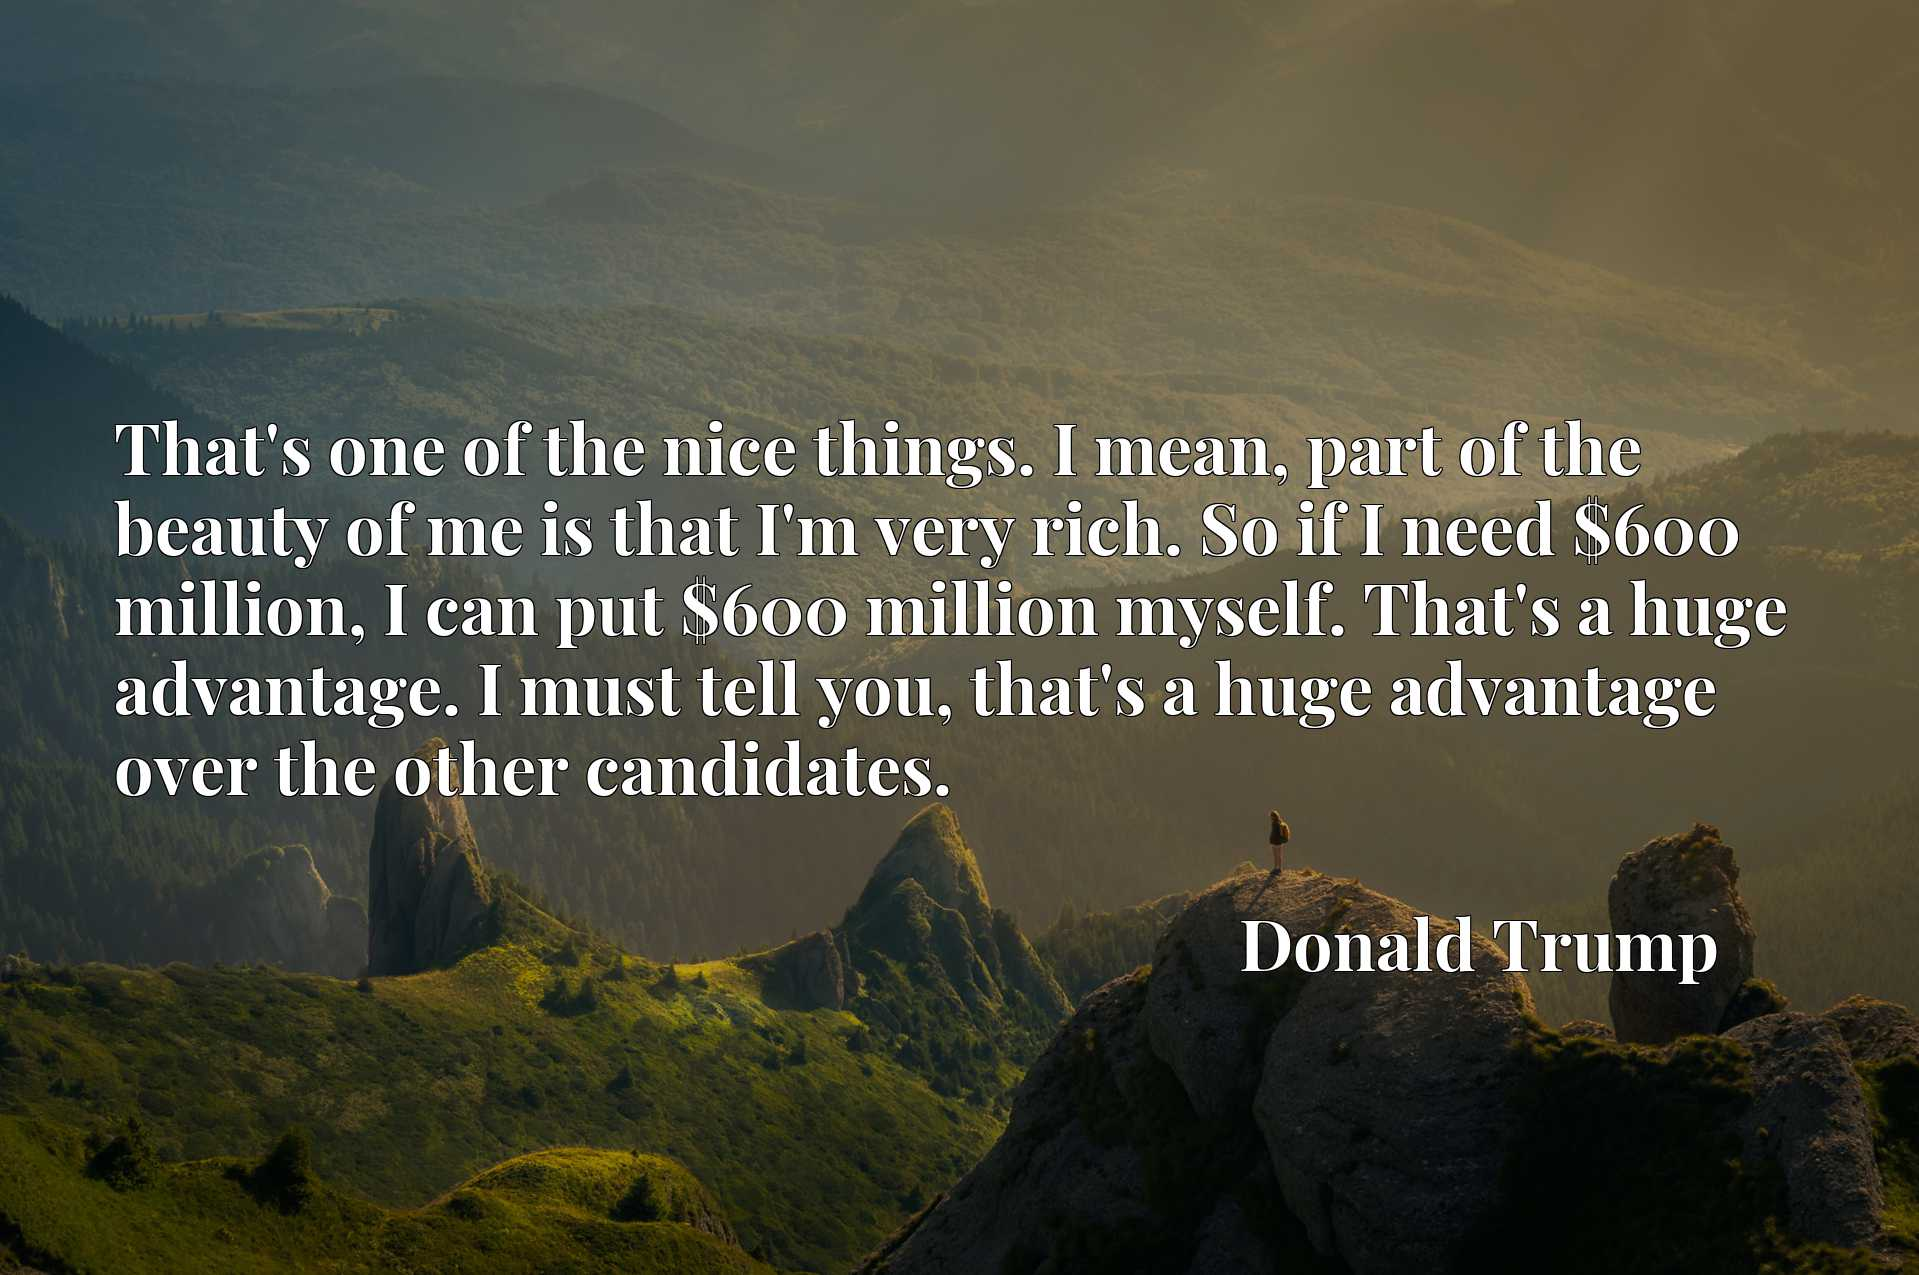 That's one of the nice things. I mean, part of the beauty of me is that I'm very rich. So if I need $600 million, I can put $600 million myself. That's a huge advantage. I must tell you, that's a huge advantage over the other candidates.